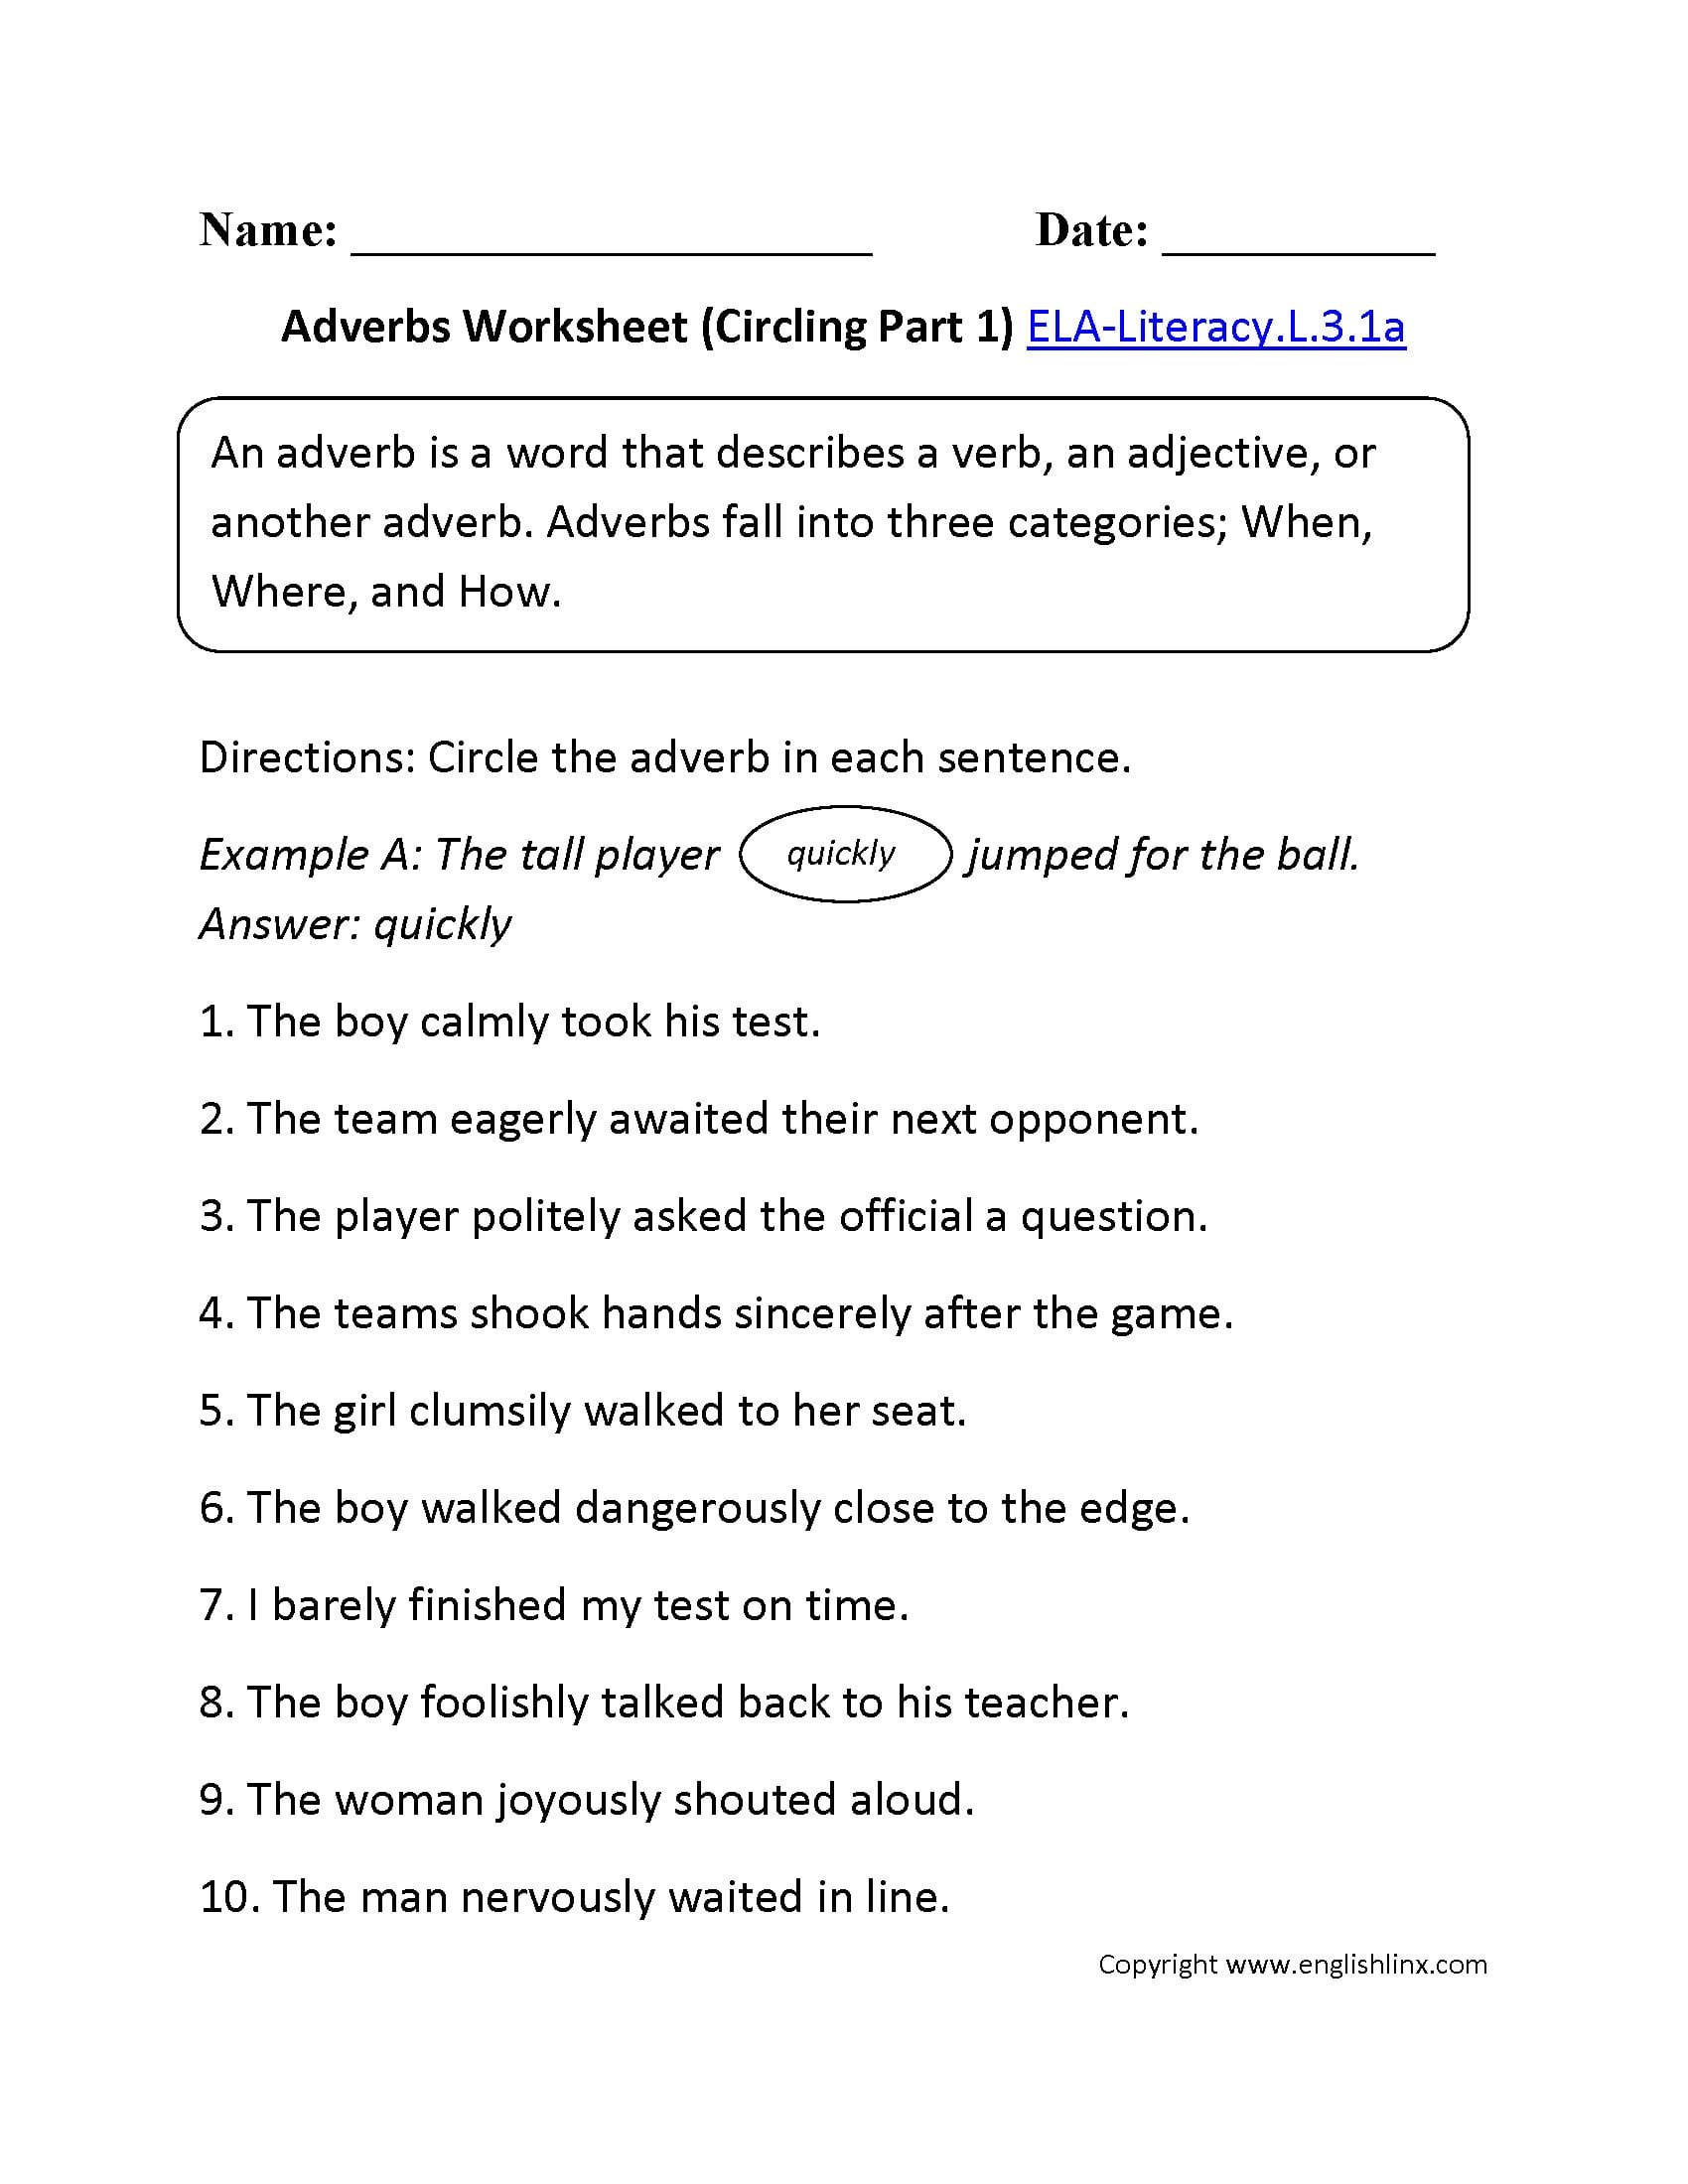 Adverb Worksheets 3rd Grade To Print Math Worksheet For